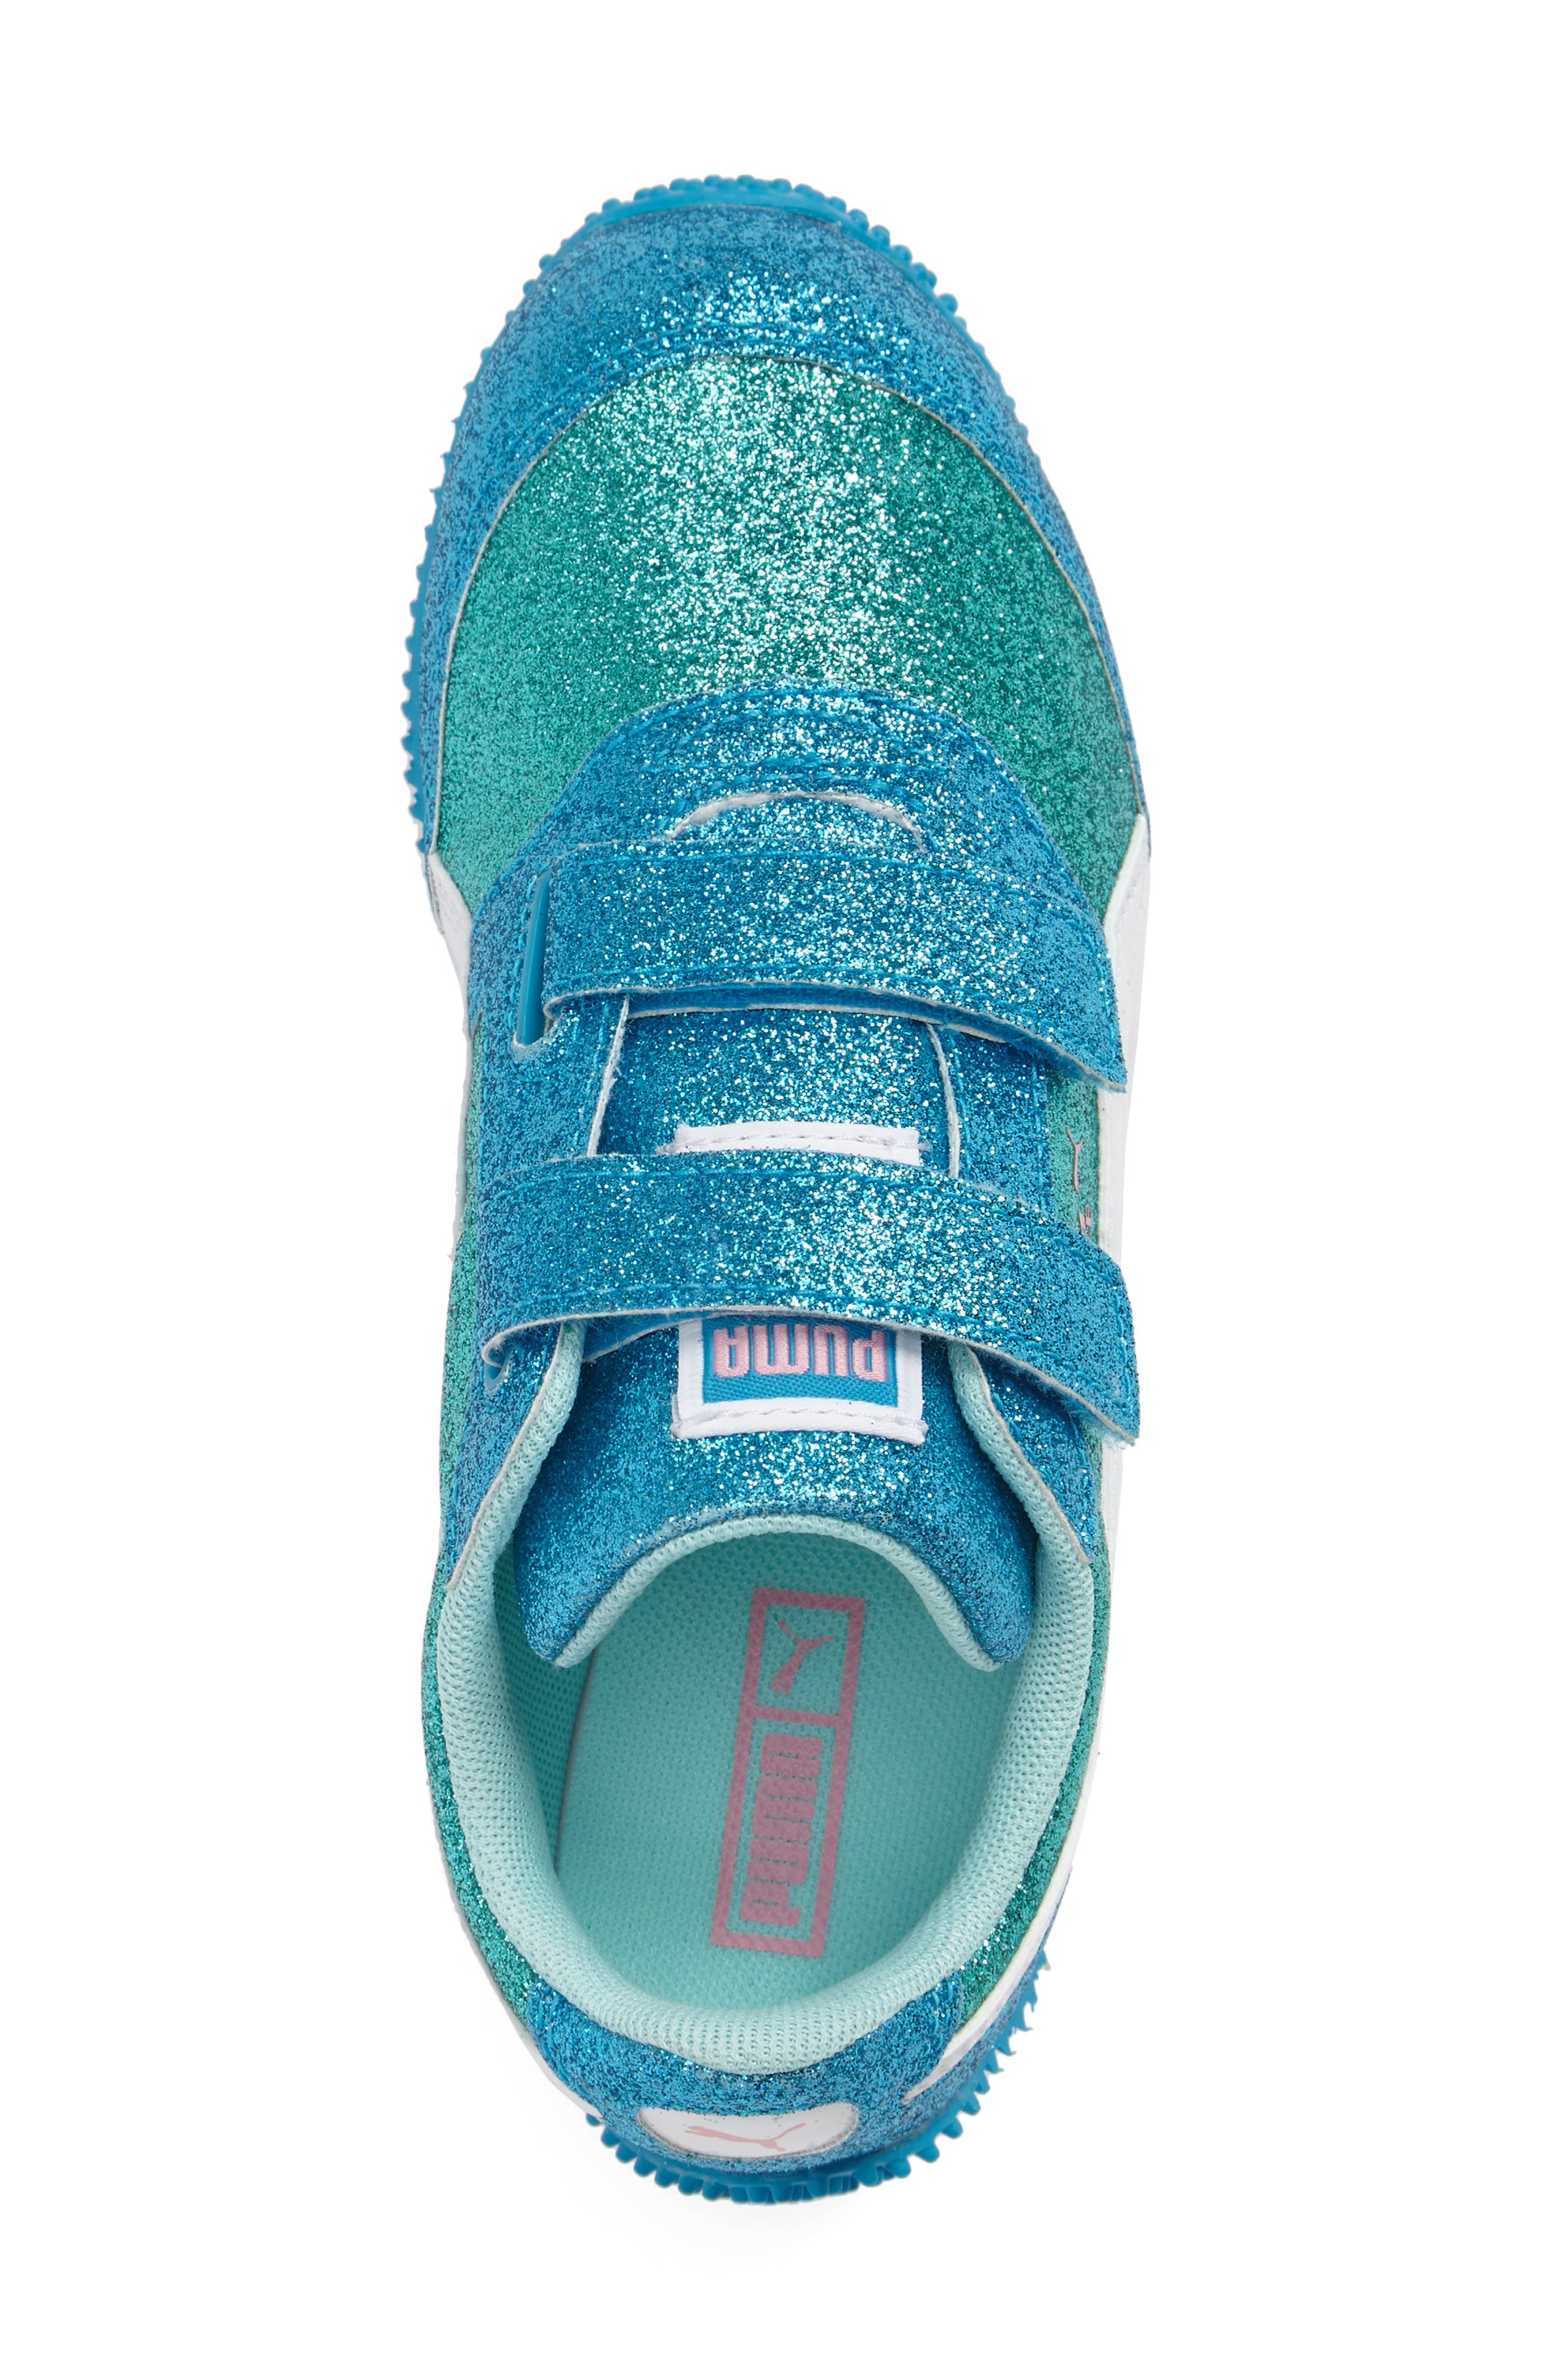 Steeple Glitz Glam Sneaker,                             Alternate thumbnail 3, color,                             400